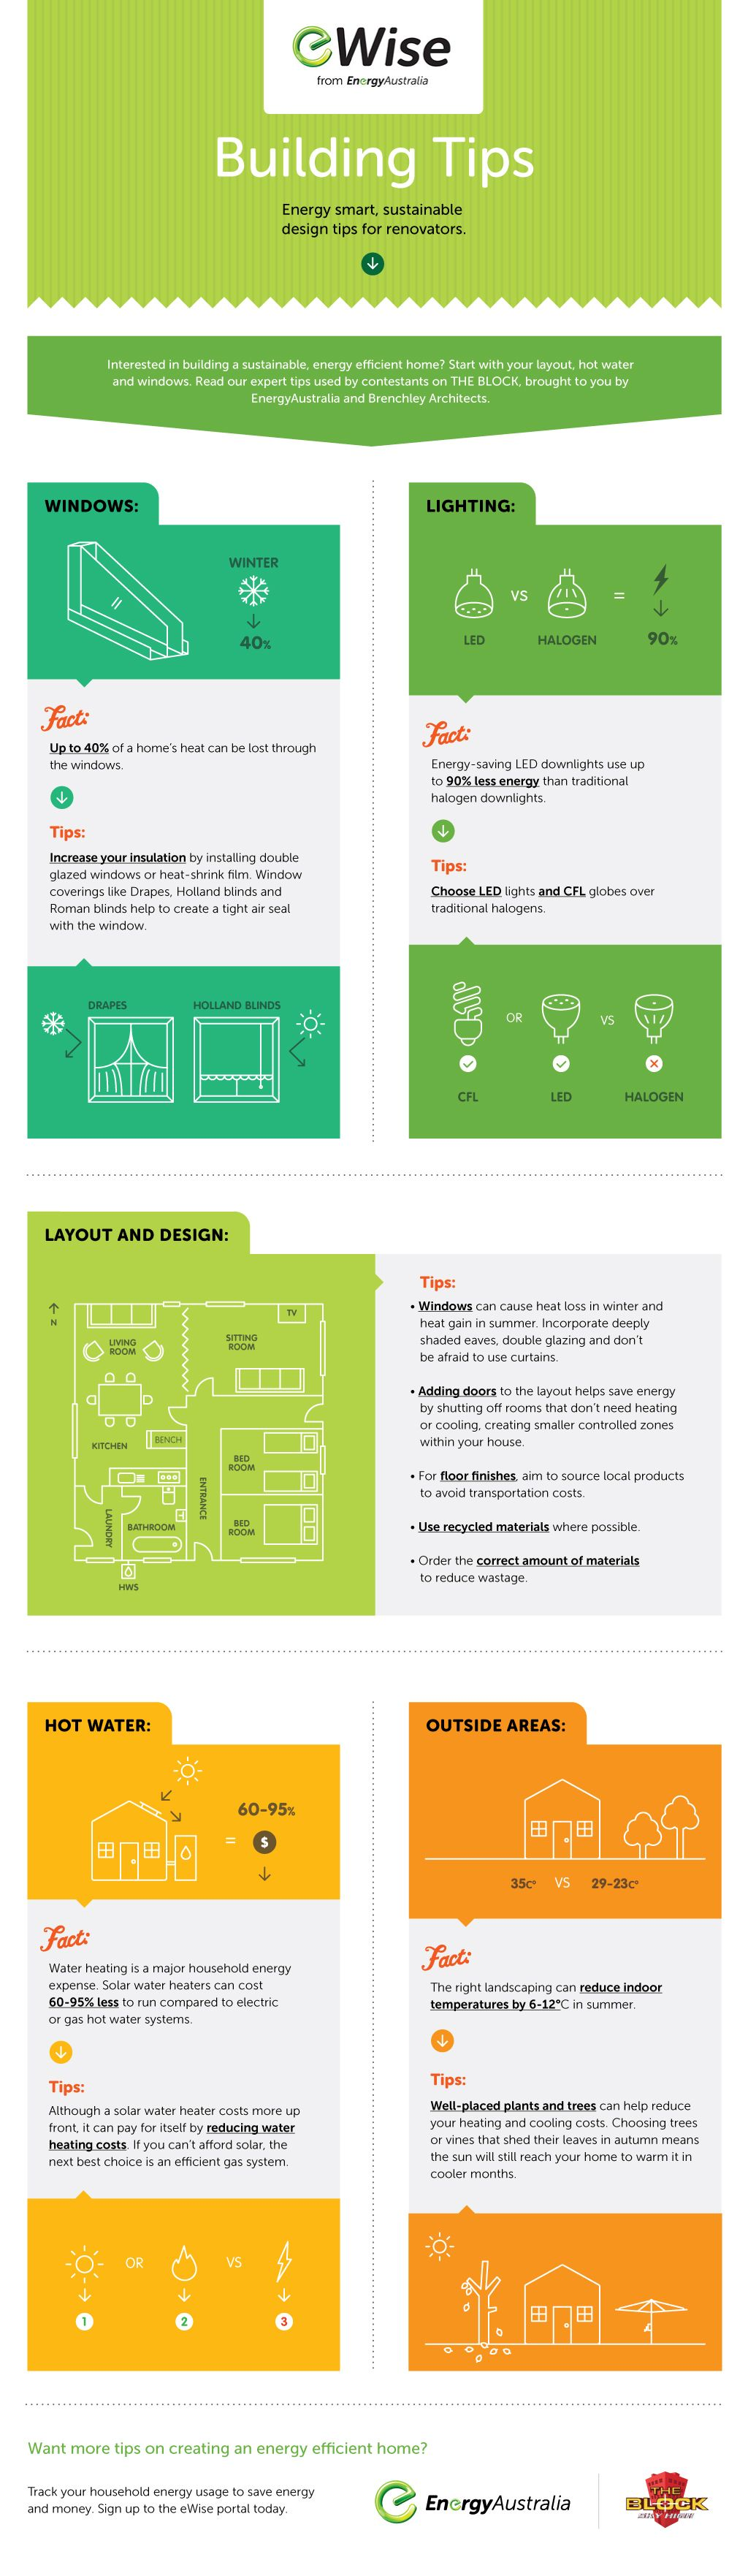 HereS Some Tips On How To Build A Sustainable Energy Efficient